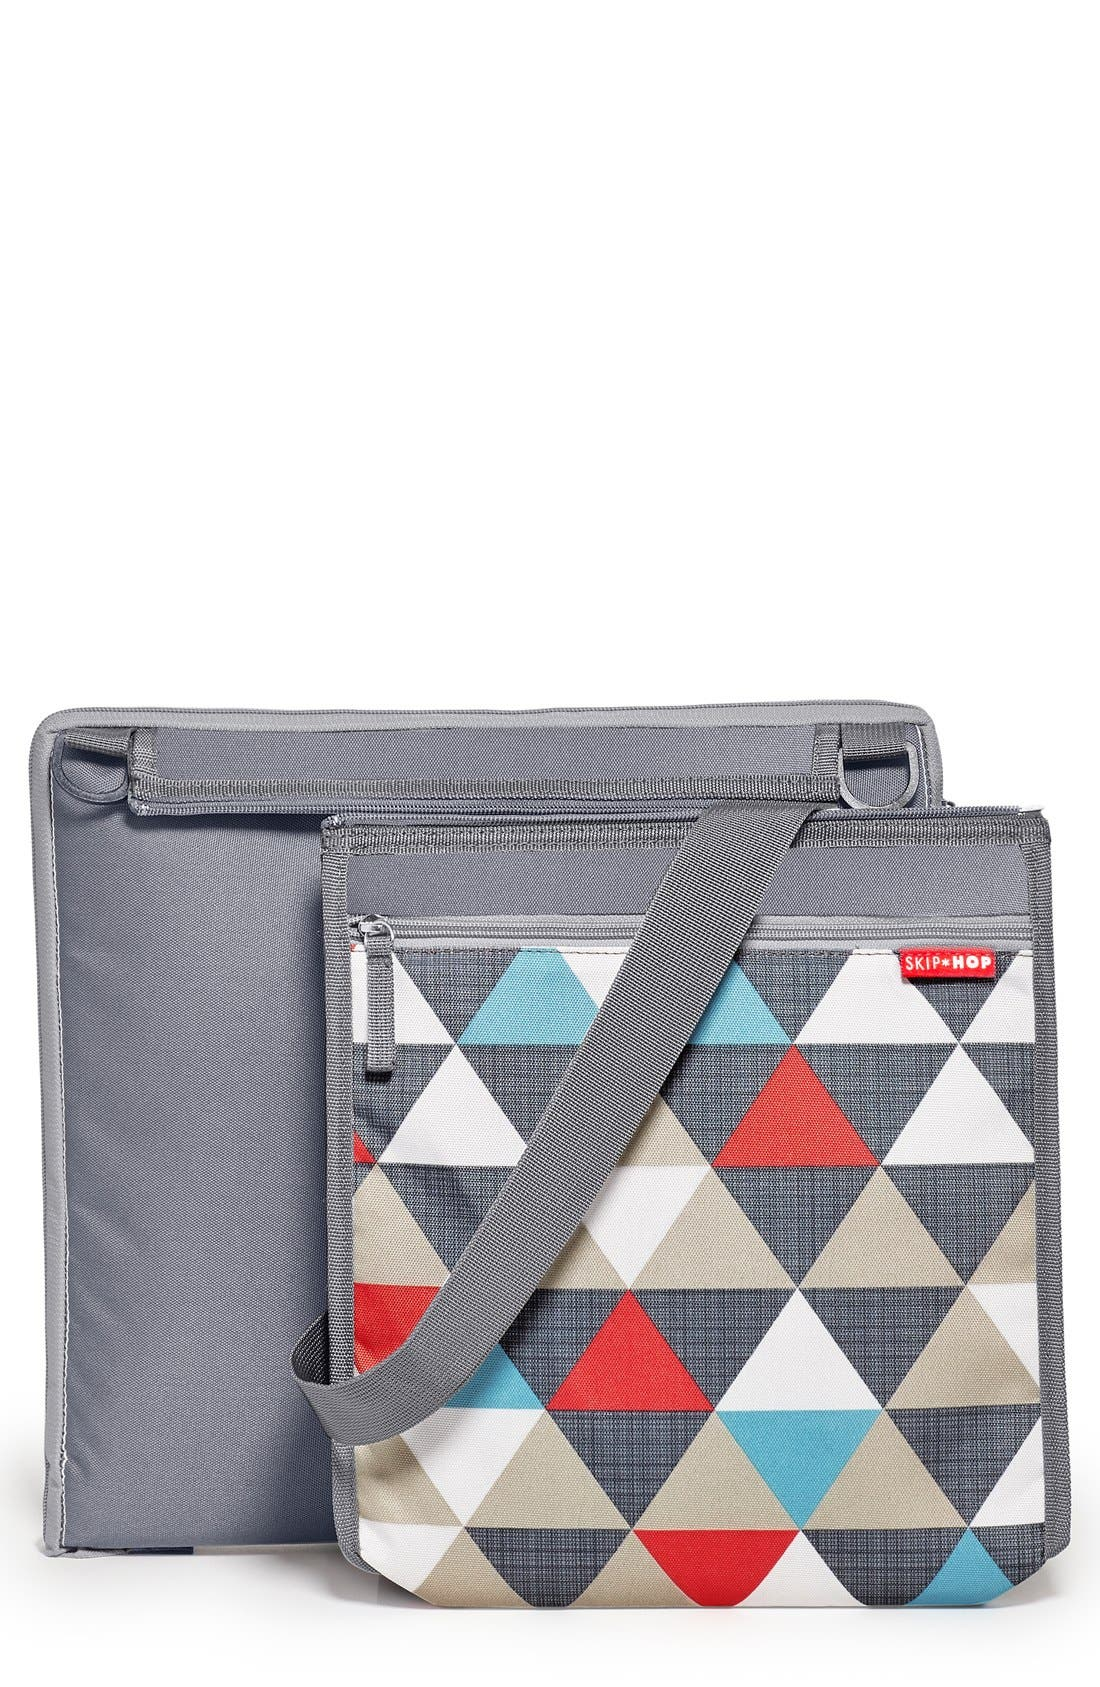 Skip Hop 'Central Park' Outdoor Blanket & Cooler Bag